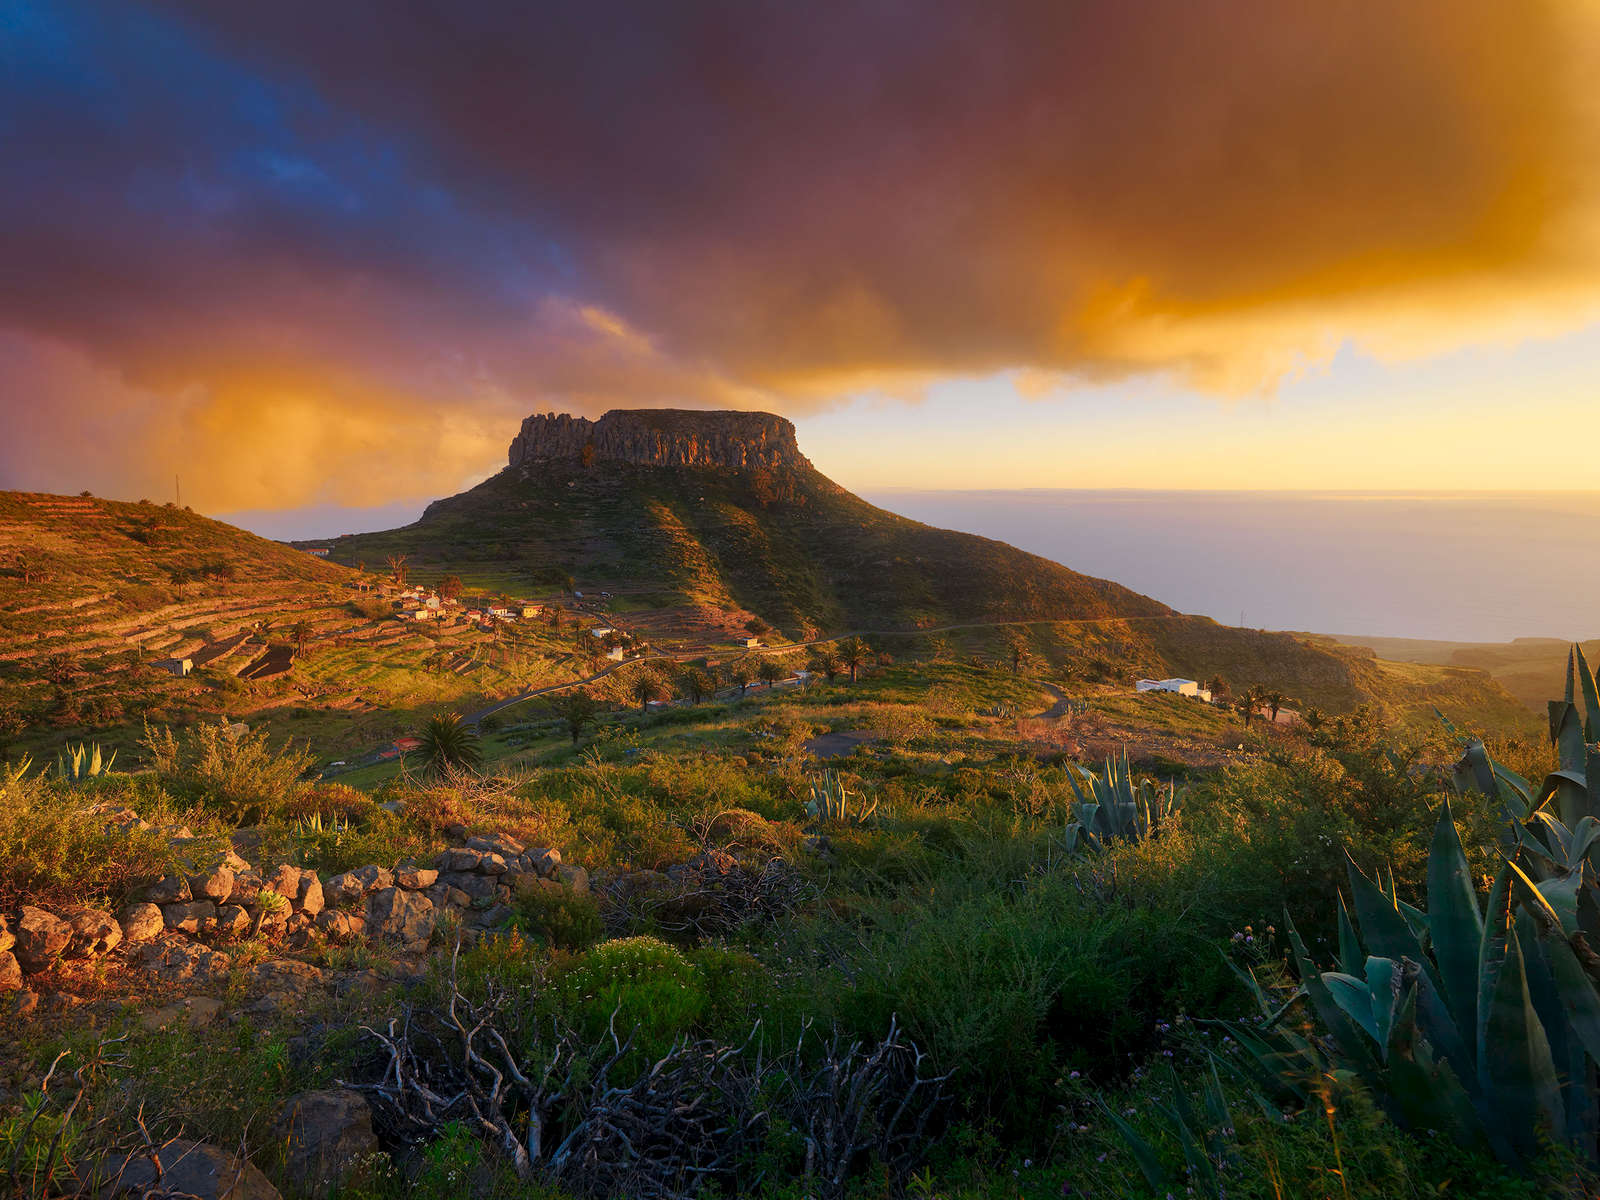 La Fortaleza at sunset, La Gomera island